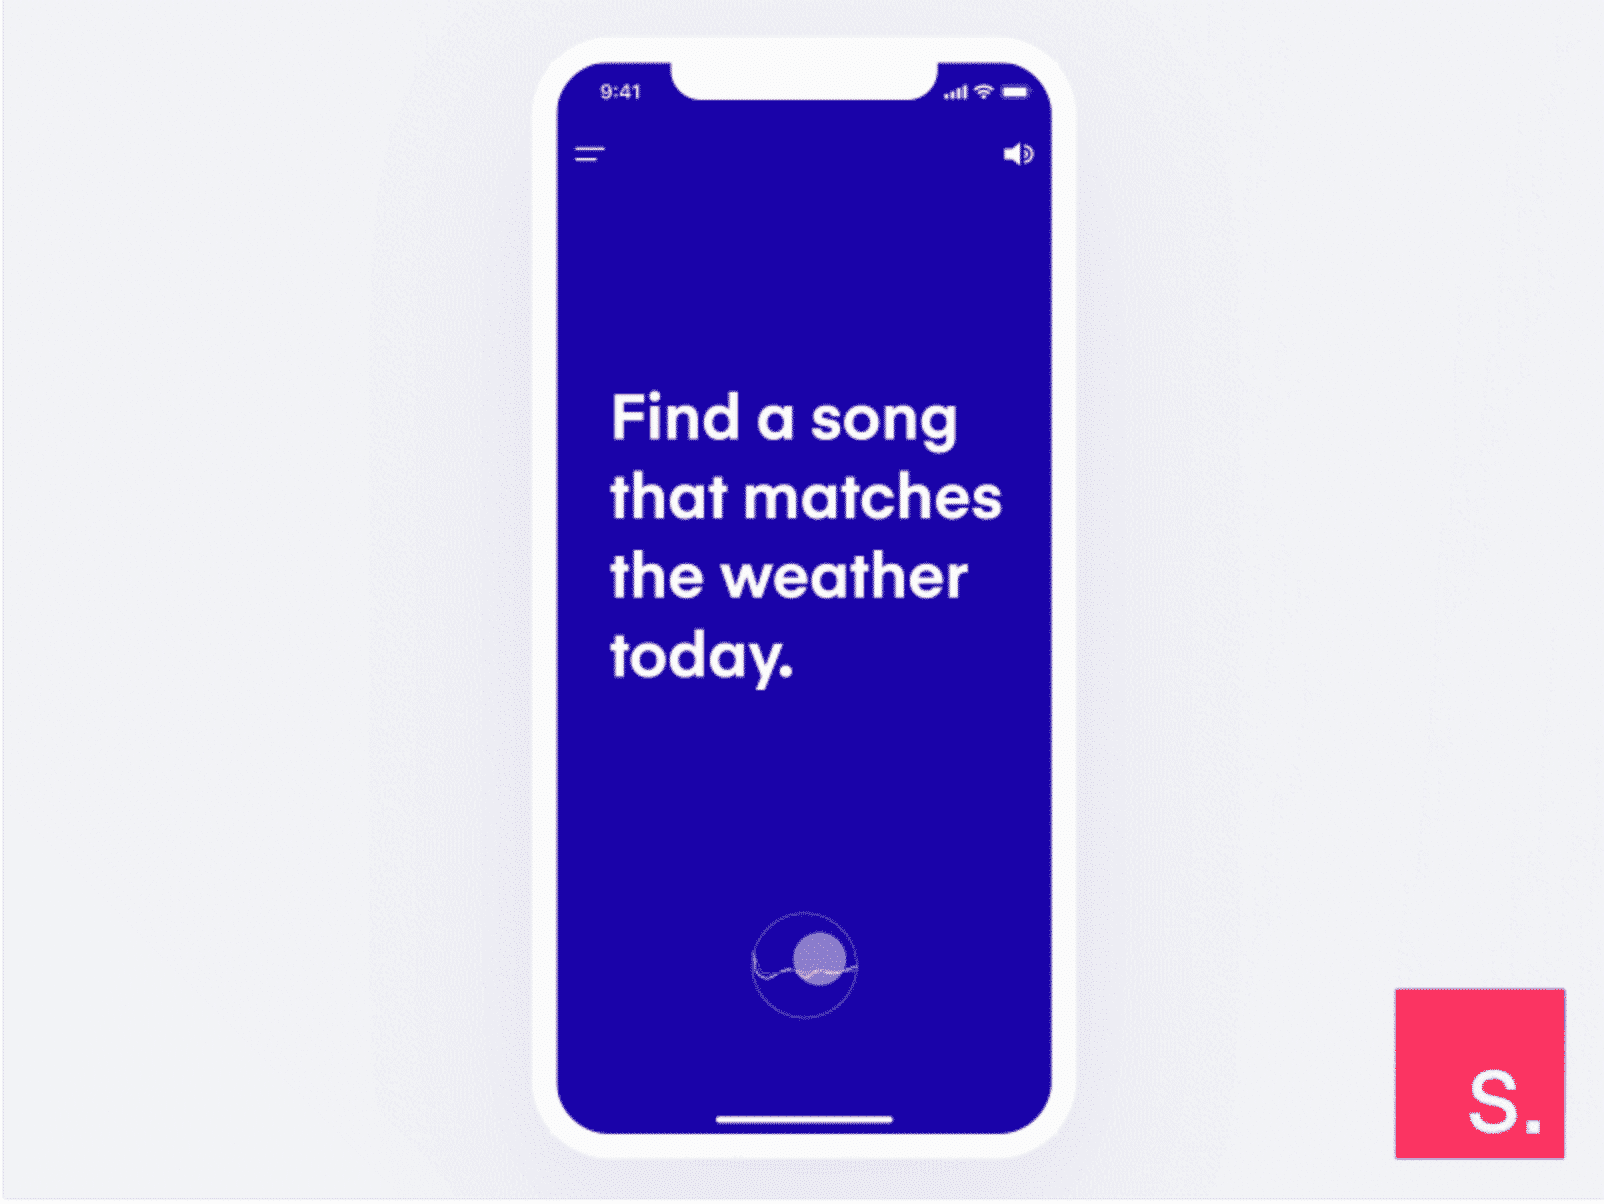 Voice Search InVision Studio (Free)